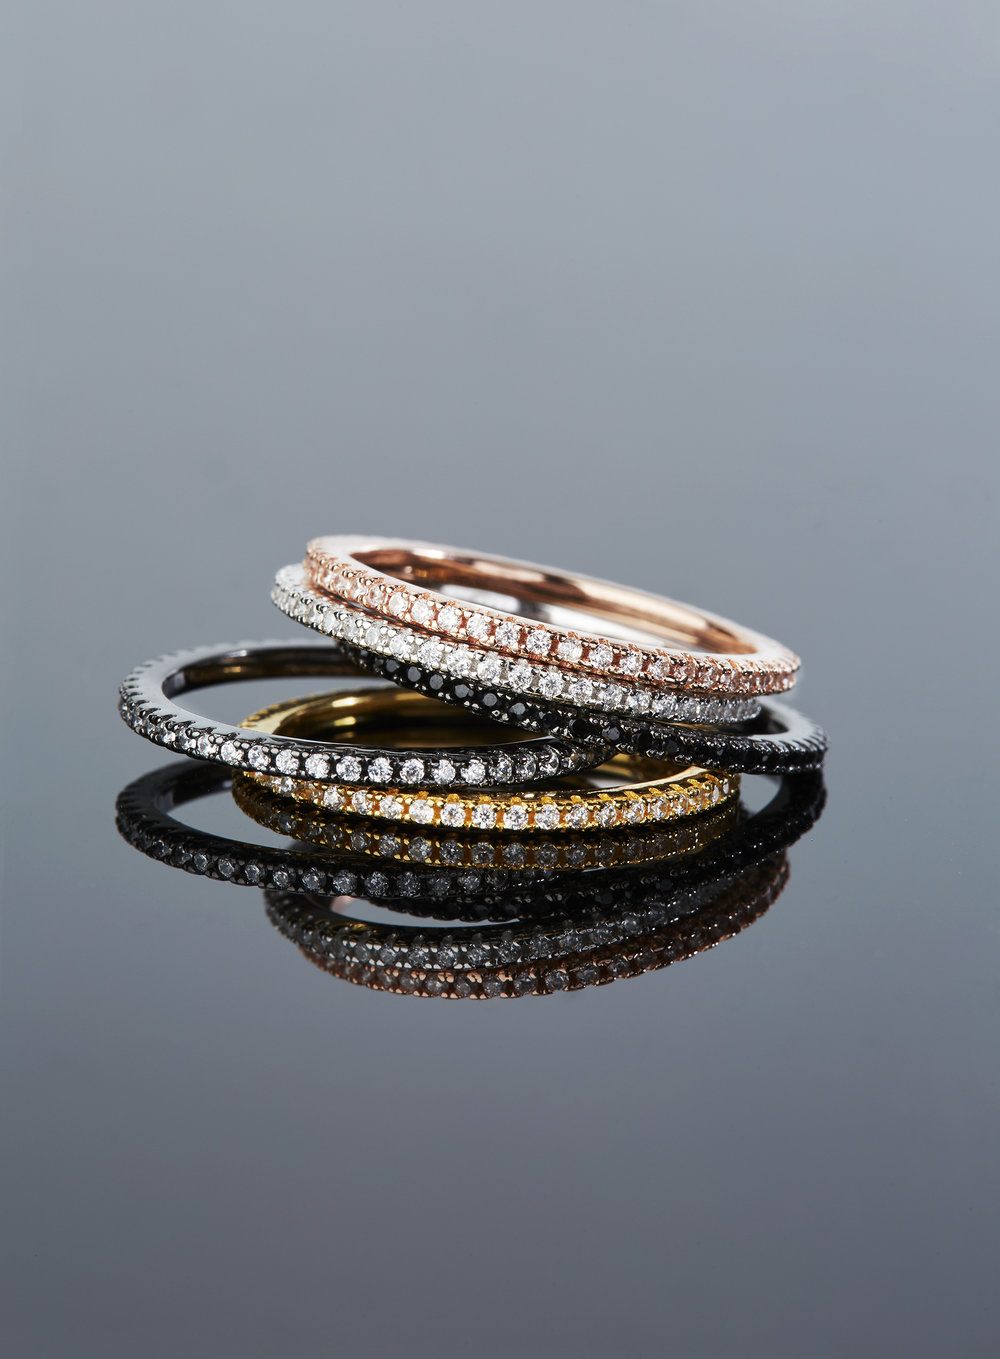 INDRA RINGS - COLLECT THE MOMENTS THAT MATTER